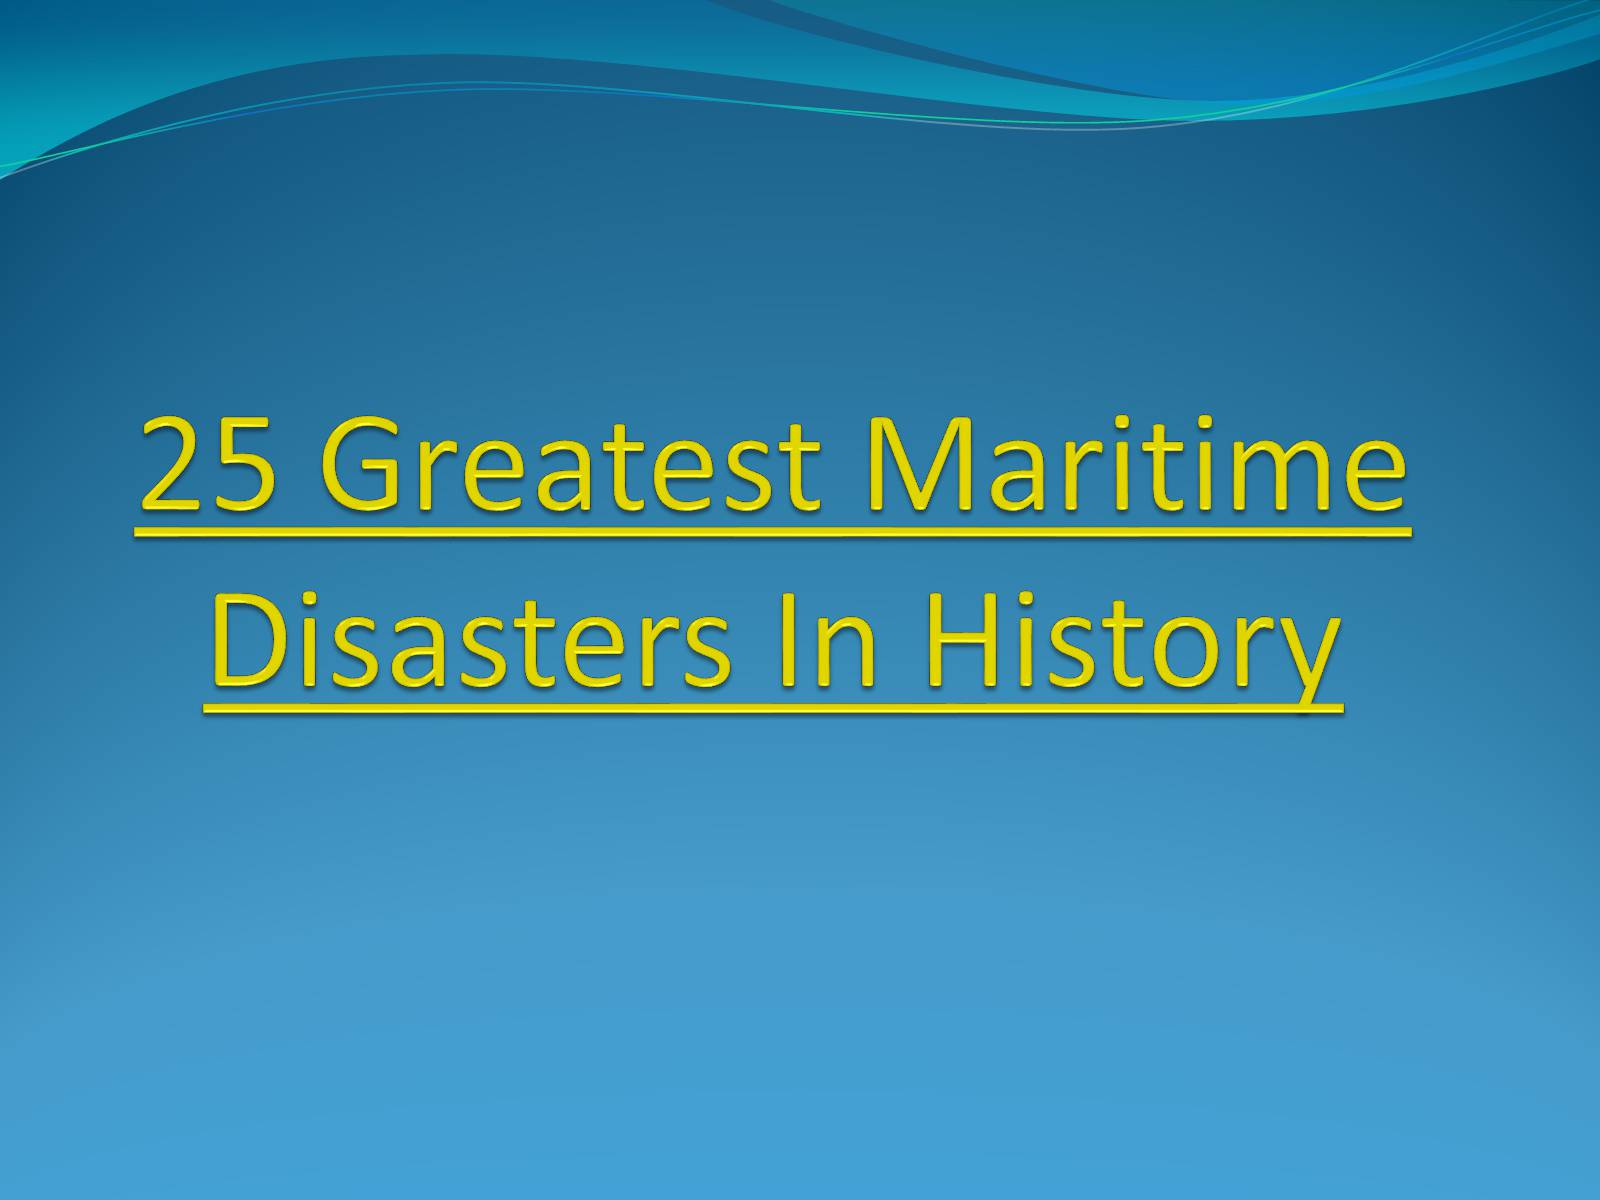 Презентація на тему «25 Greatest Maritime Disasters In History»